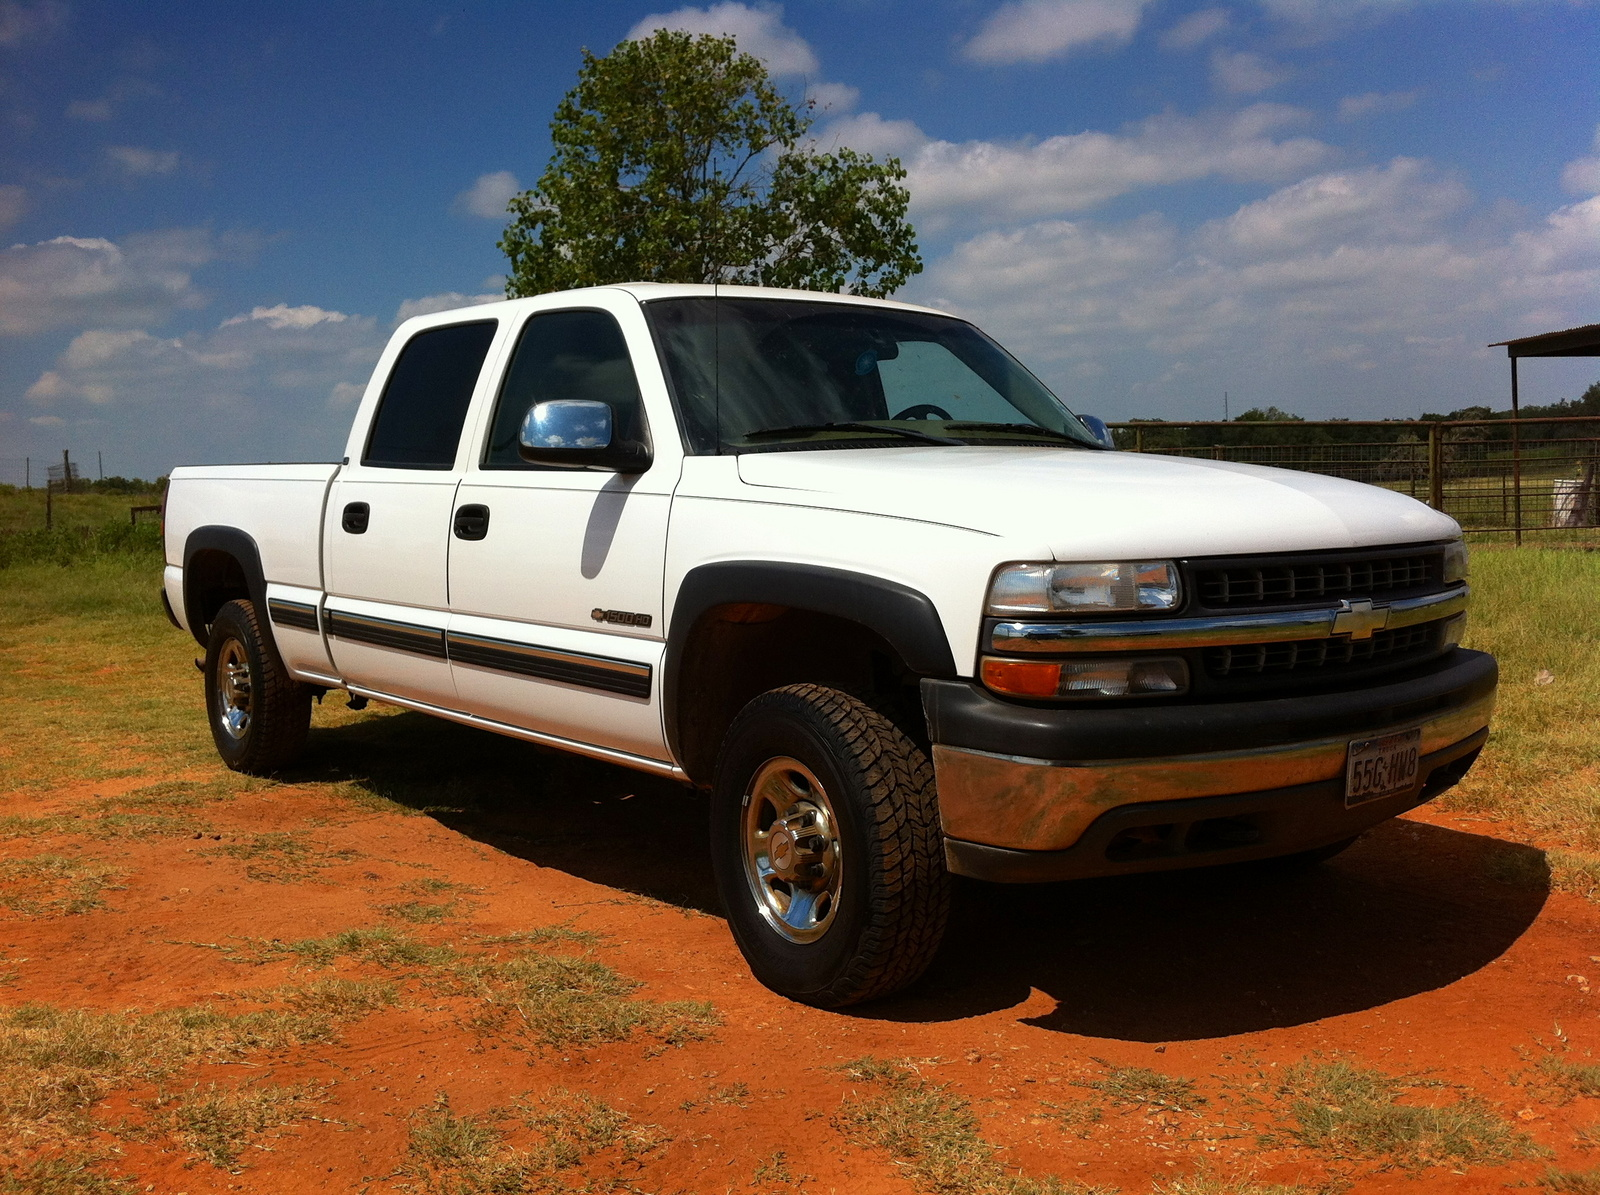 2001 chevrolet silverado 1500hd hd ls crew cab picture. Cars Review. Best American Auto & Cars Review